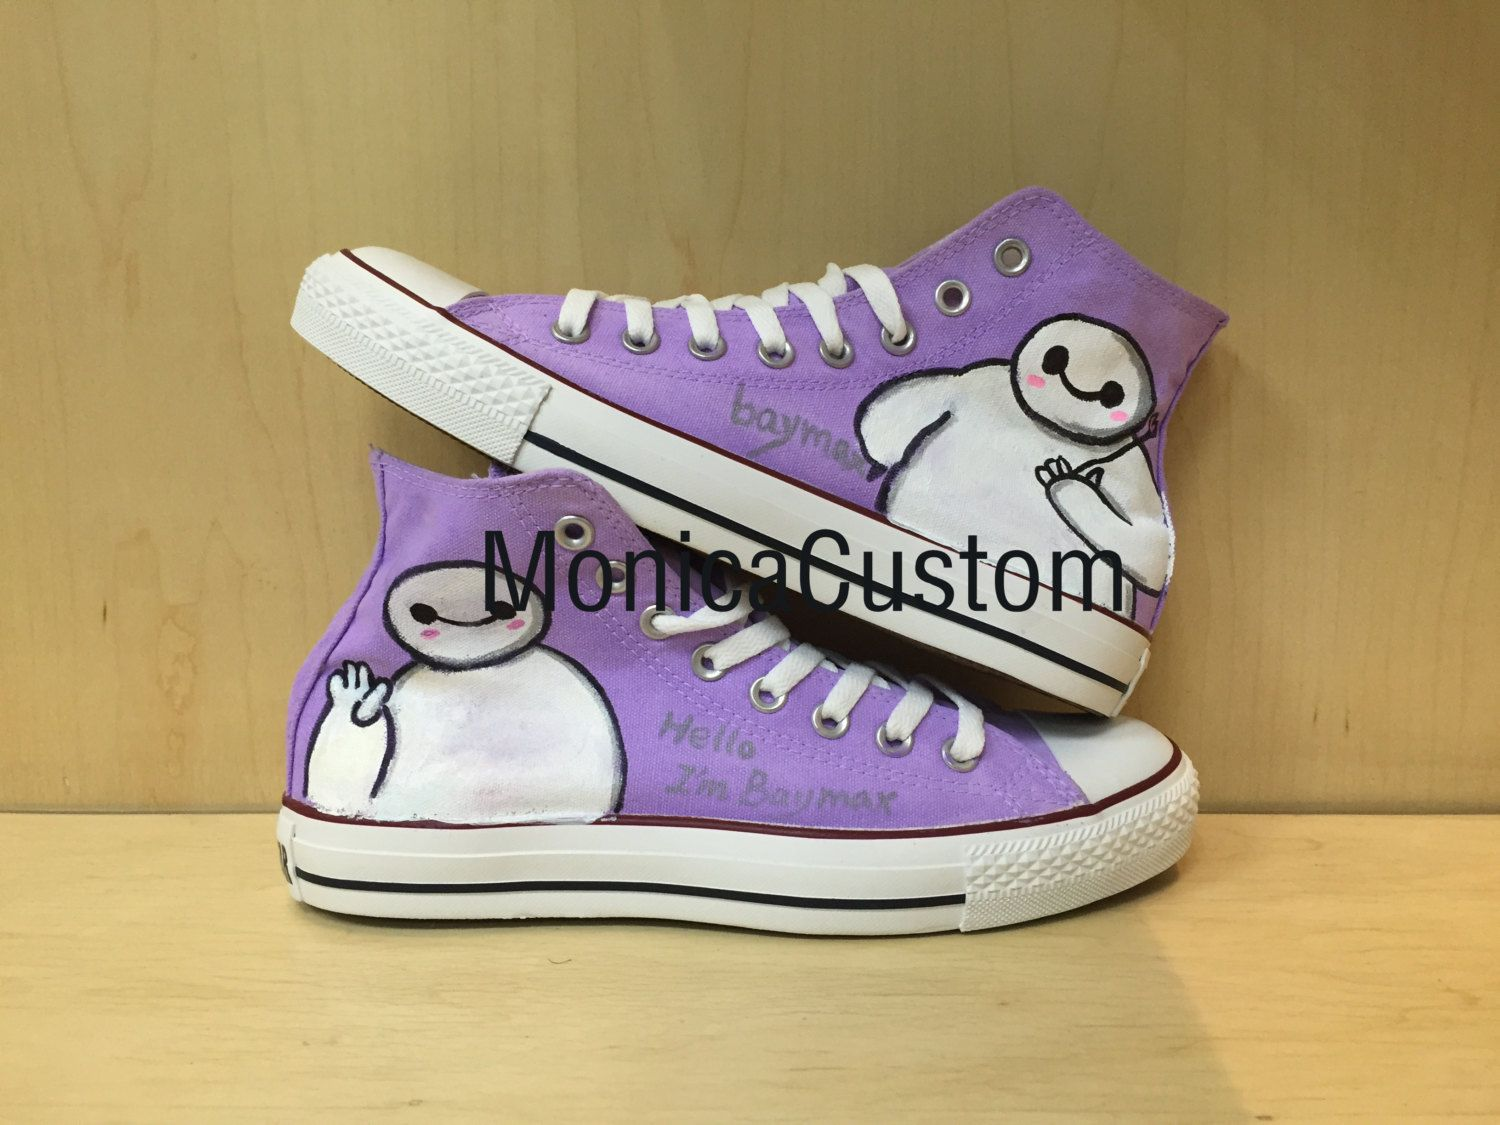 c9d49cce9b Baymax Converse shoes Custom Converse《Big Hero 6》Converse Sneakers Hand- Painted On